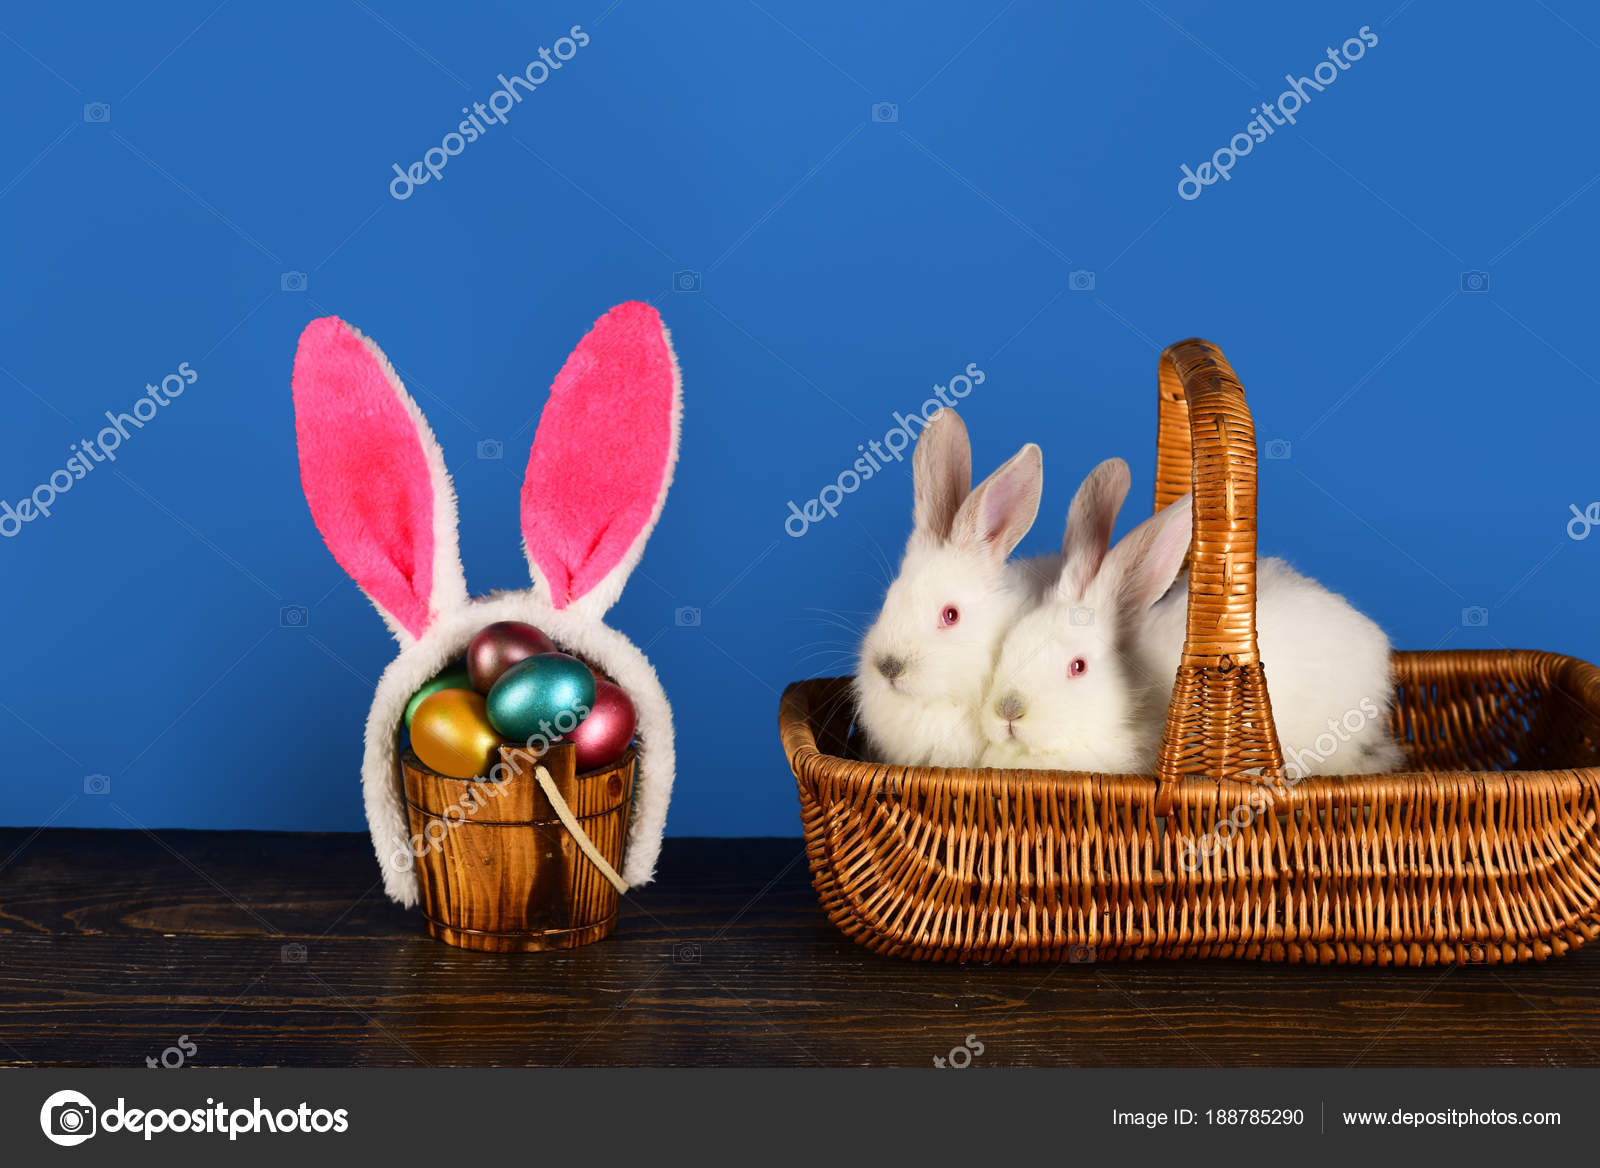 White cute rabbits in the basket cute bunny rabbits with funny white cute rabbits in the basket cute bunny rabbits with funny rabbit ears best happy easter ideas for happy family photo by hannatv negle Gallery